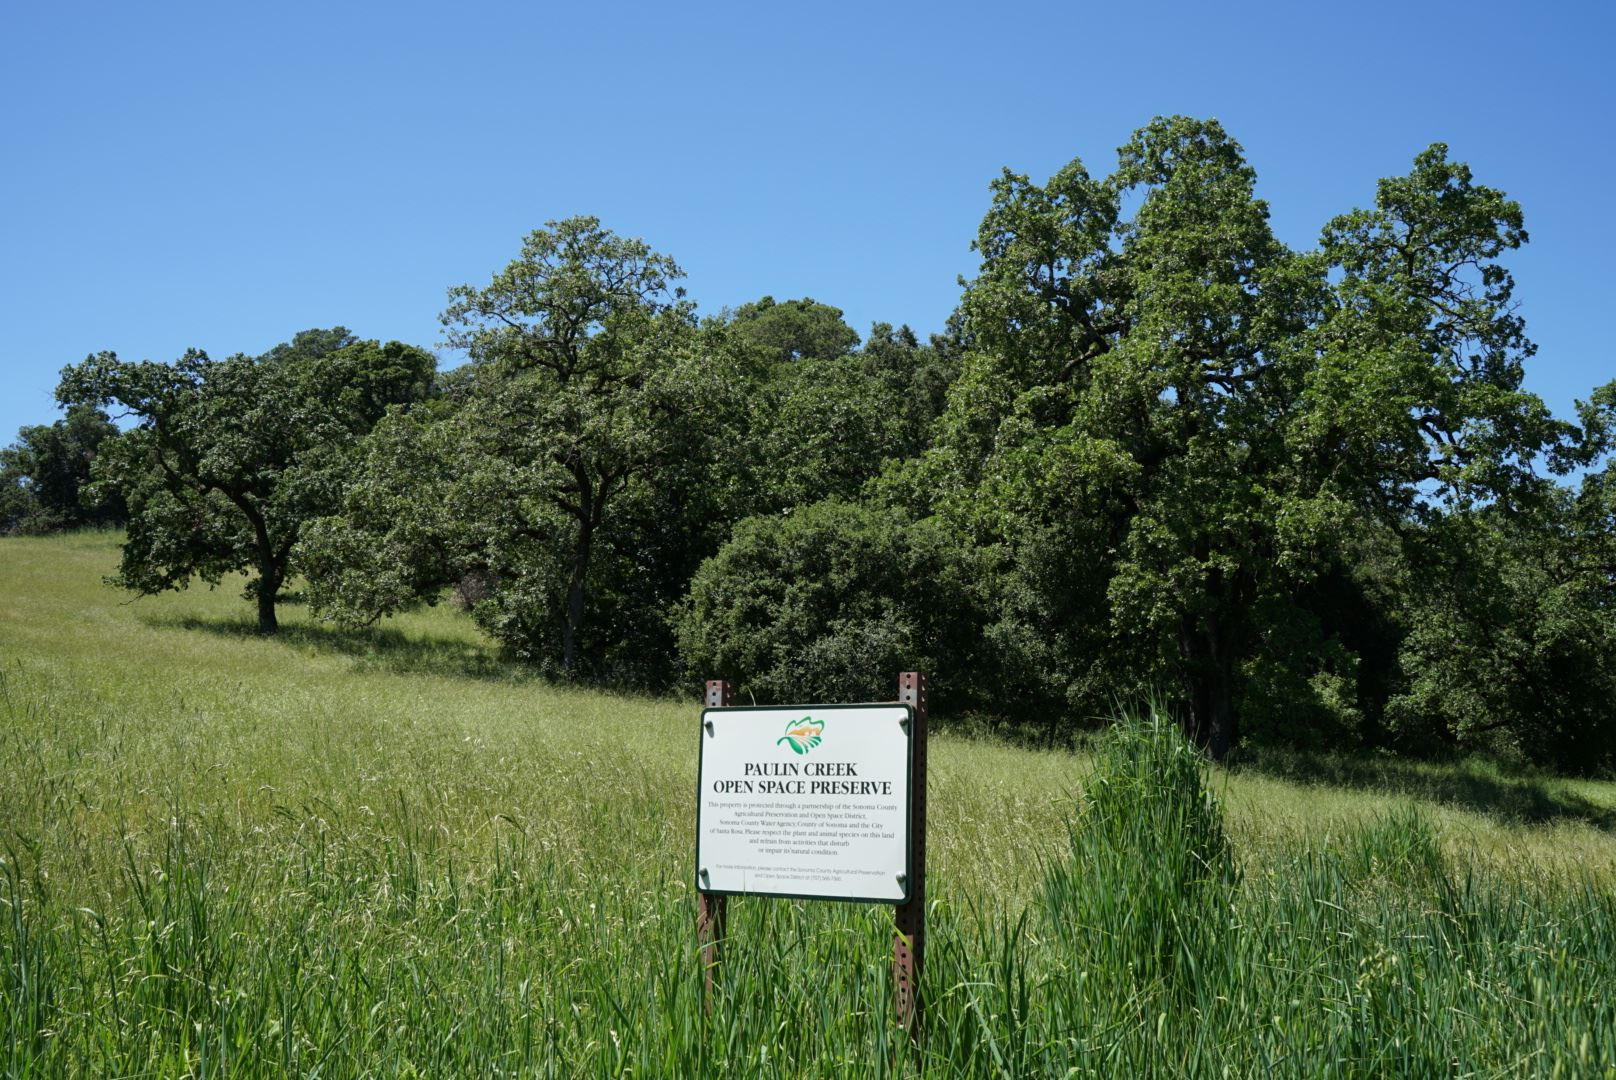 Field with tall green grass and Paulin Creek signage